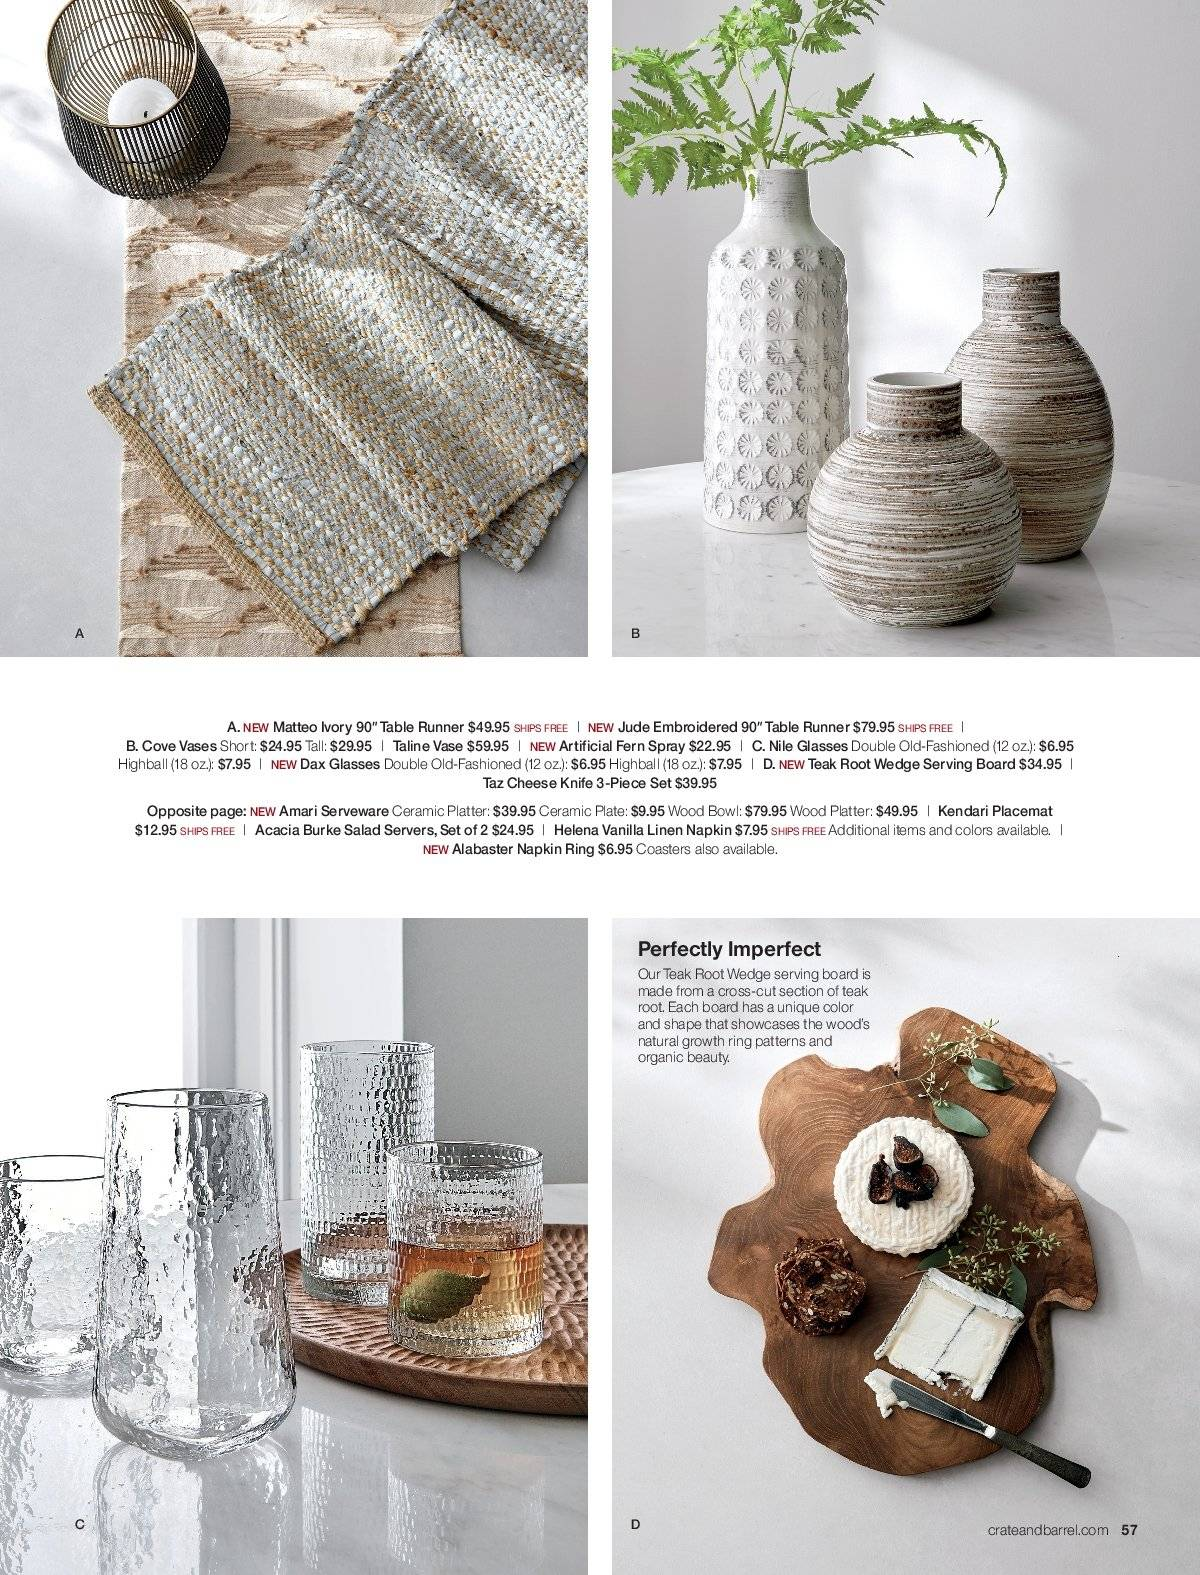 Crate & Barrel Flyer - 03.01.2019 - 03.31.2019 - Sales products - bowl, knife, napkin, spray, table, table runner, tea, plate, organic, cheese, salad, board, platter. Page 57.